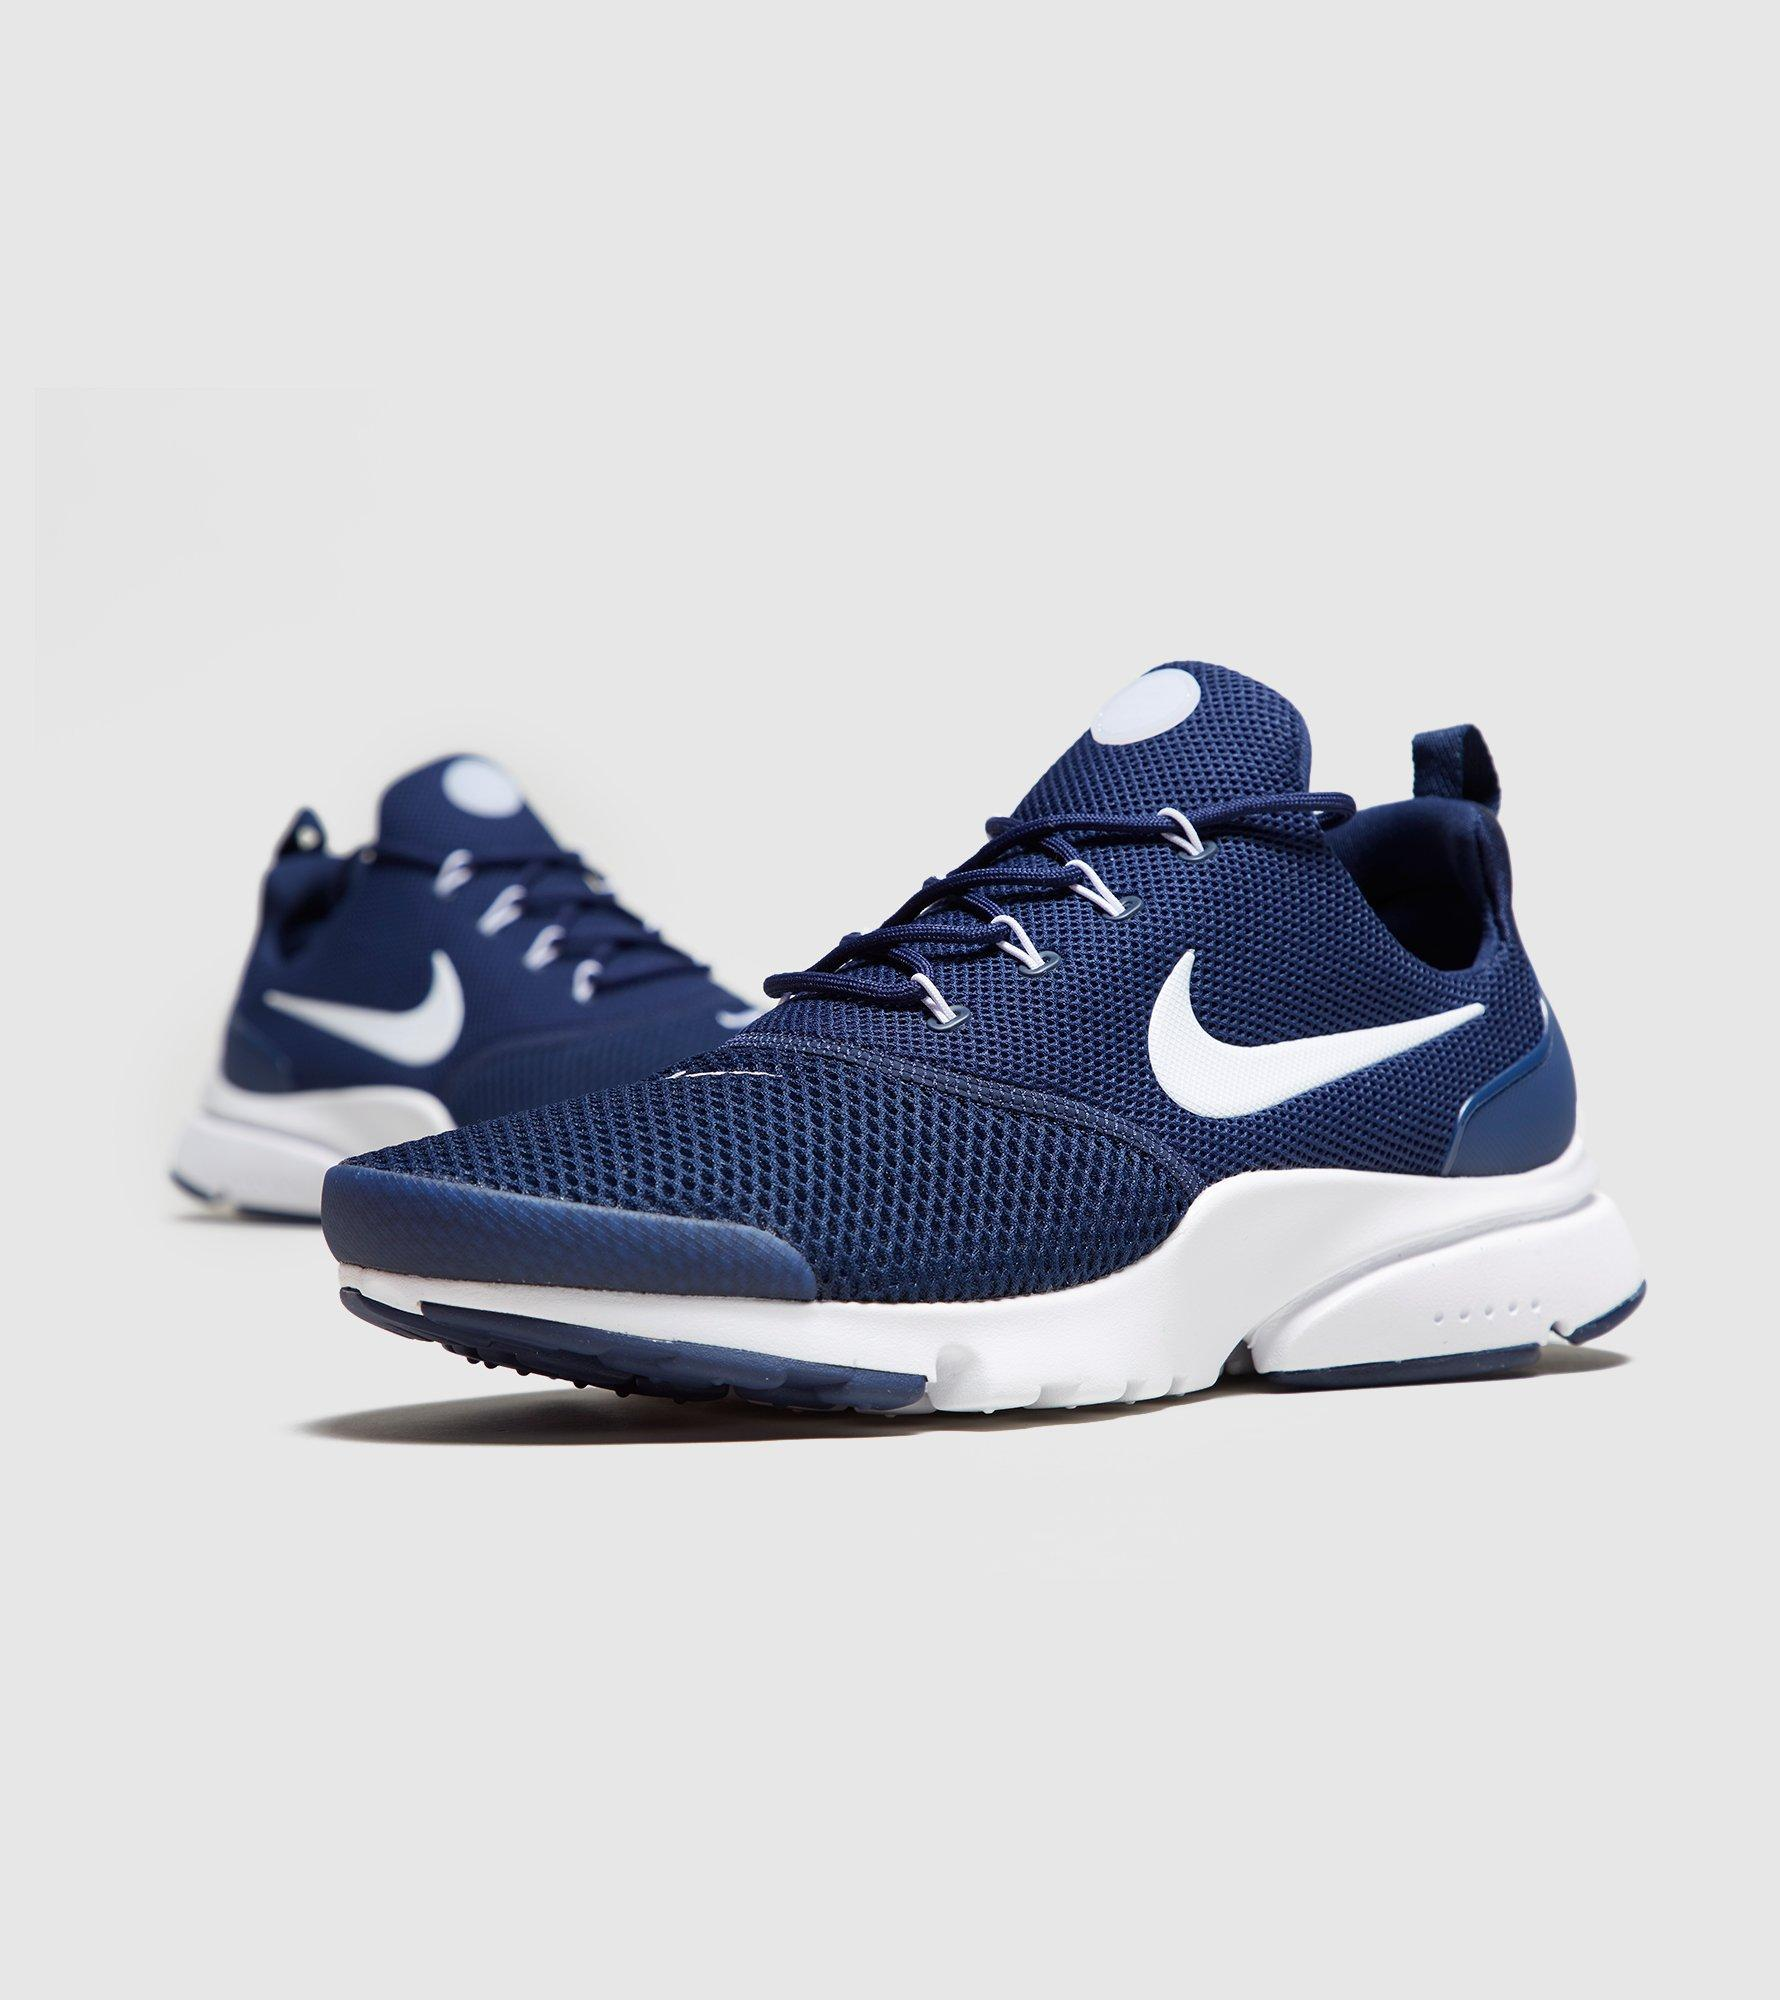 ... thoughts on 55053 f9bb7 Lyst - Nike Air Presto Fly in Blue for Men ... 614d7db36